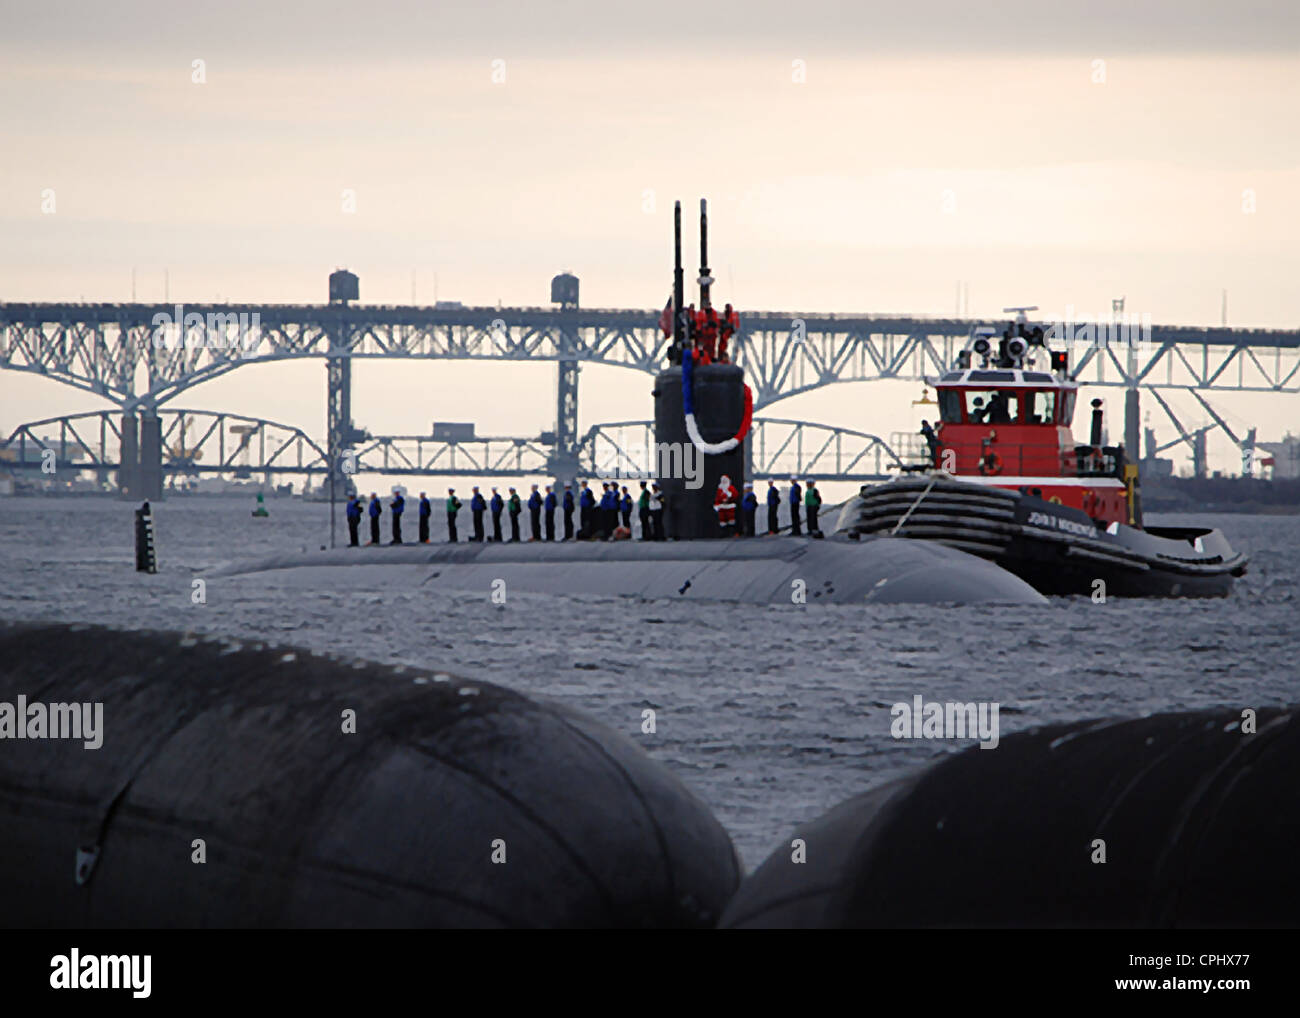 The Los Angeles-class nuclear powered fast attack submarine USS Miami (SSN 755) returns home to Submarine Base New - Stock Image